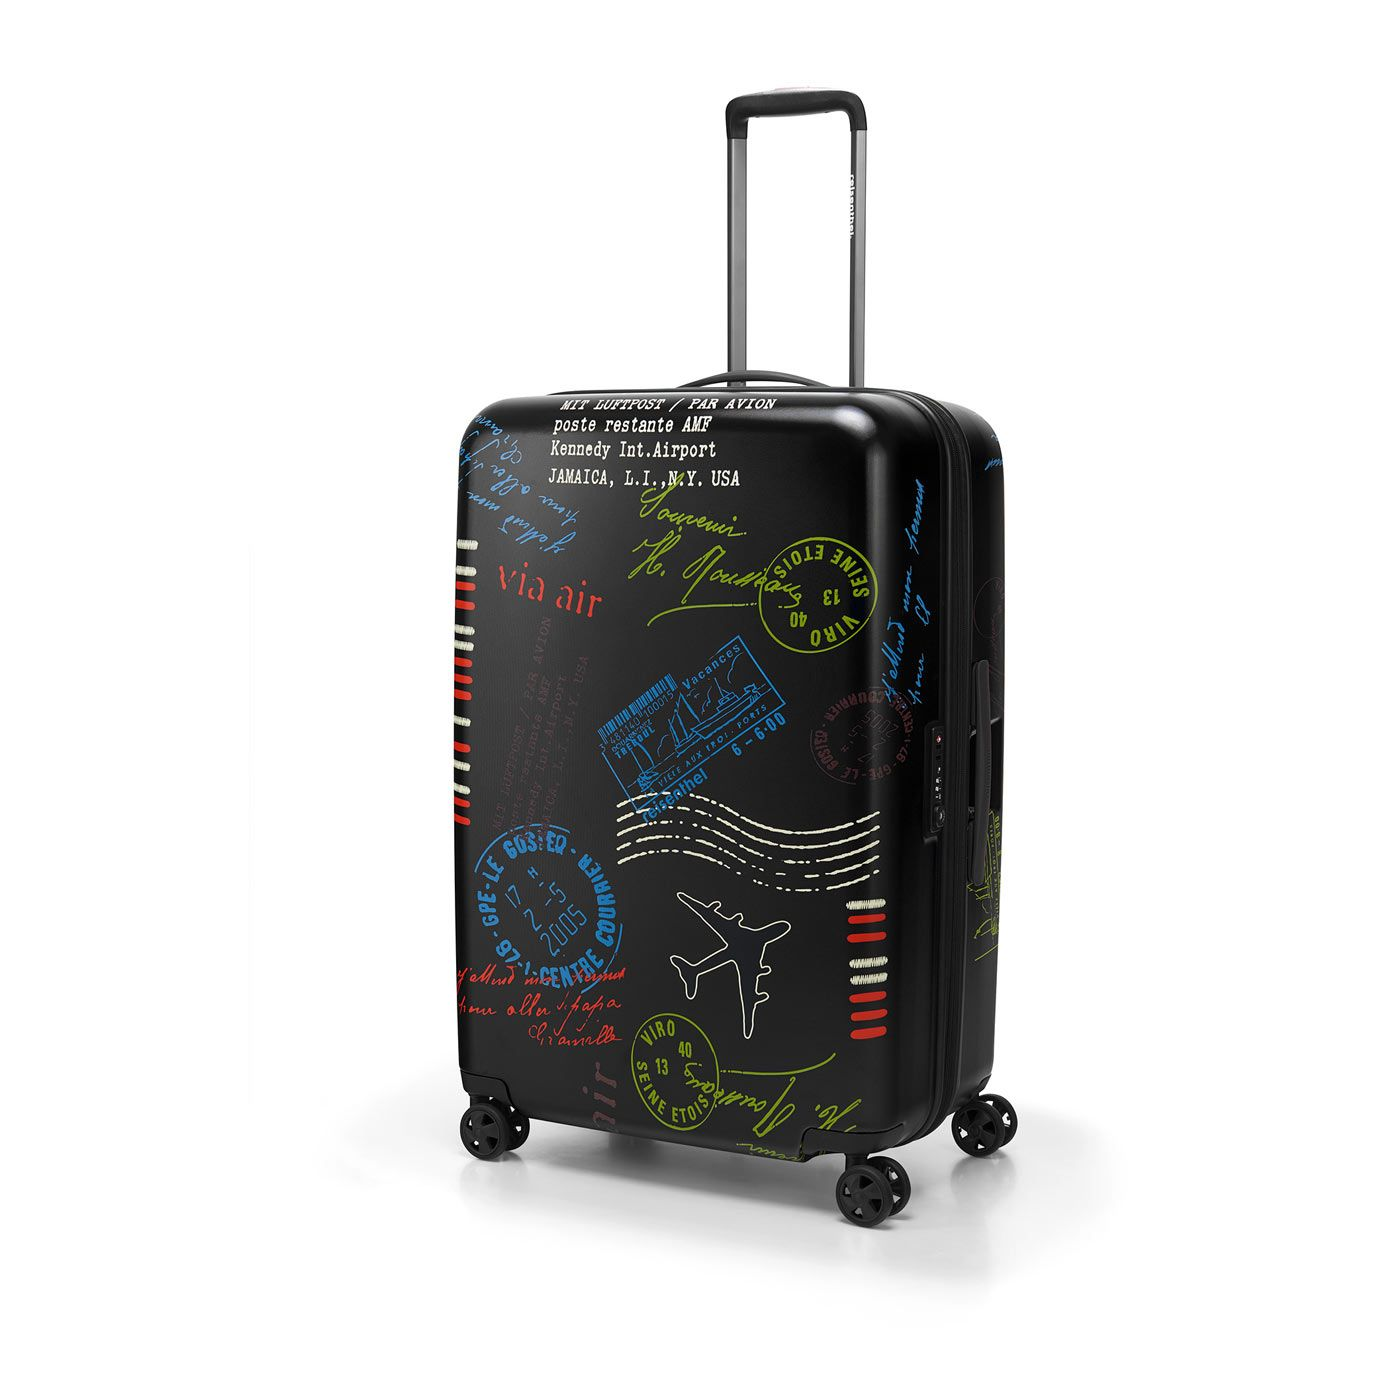 Reisekoffer & -taschen Travelite Elbe Two Trolley M 65 Cm Pilotenkoffer & Trolleys